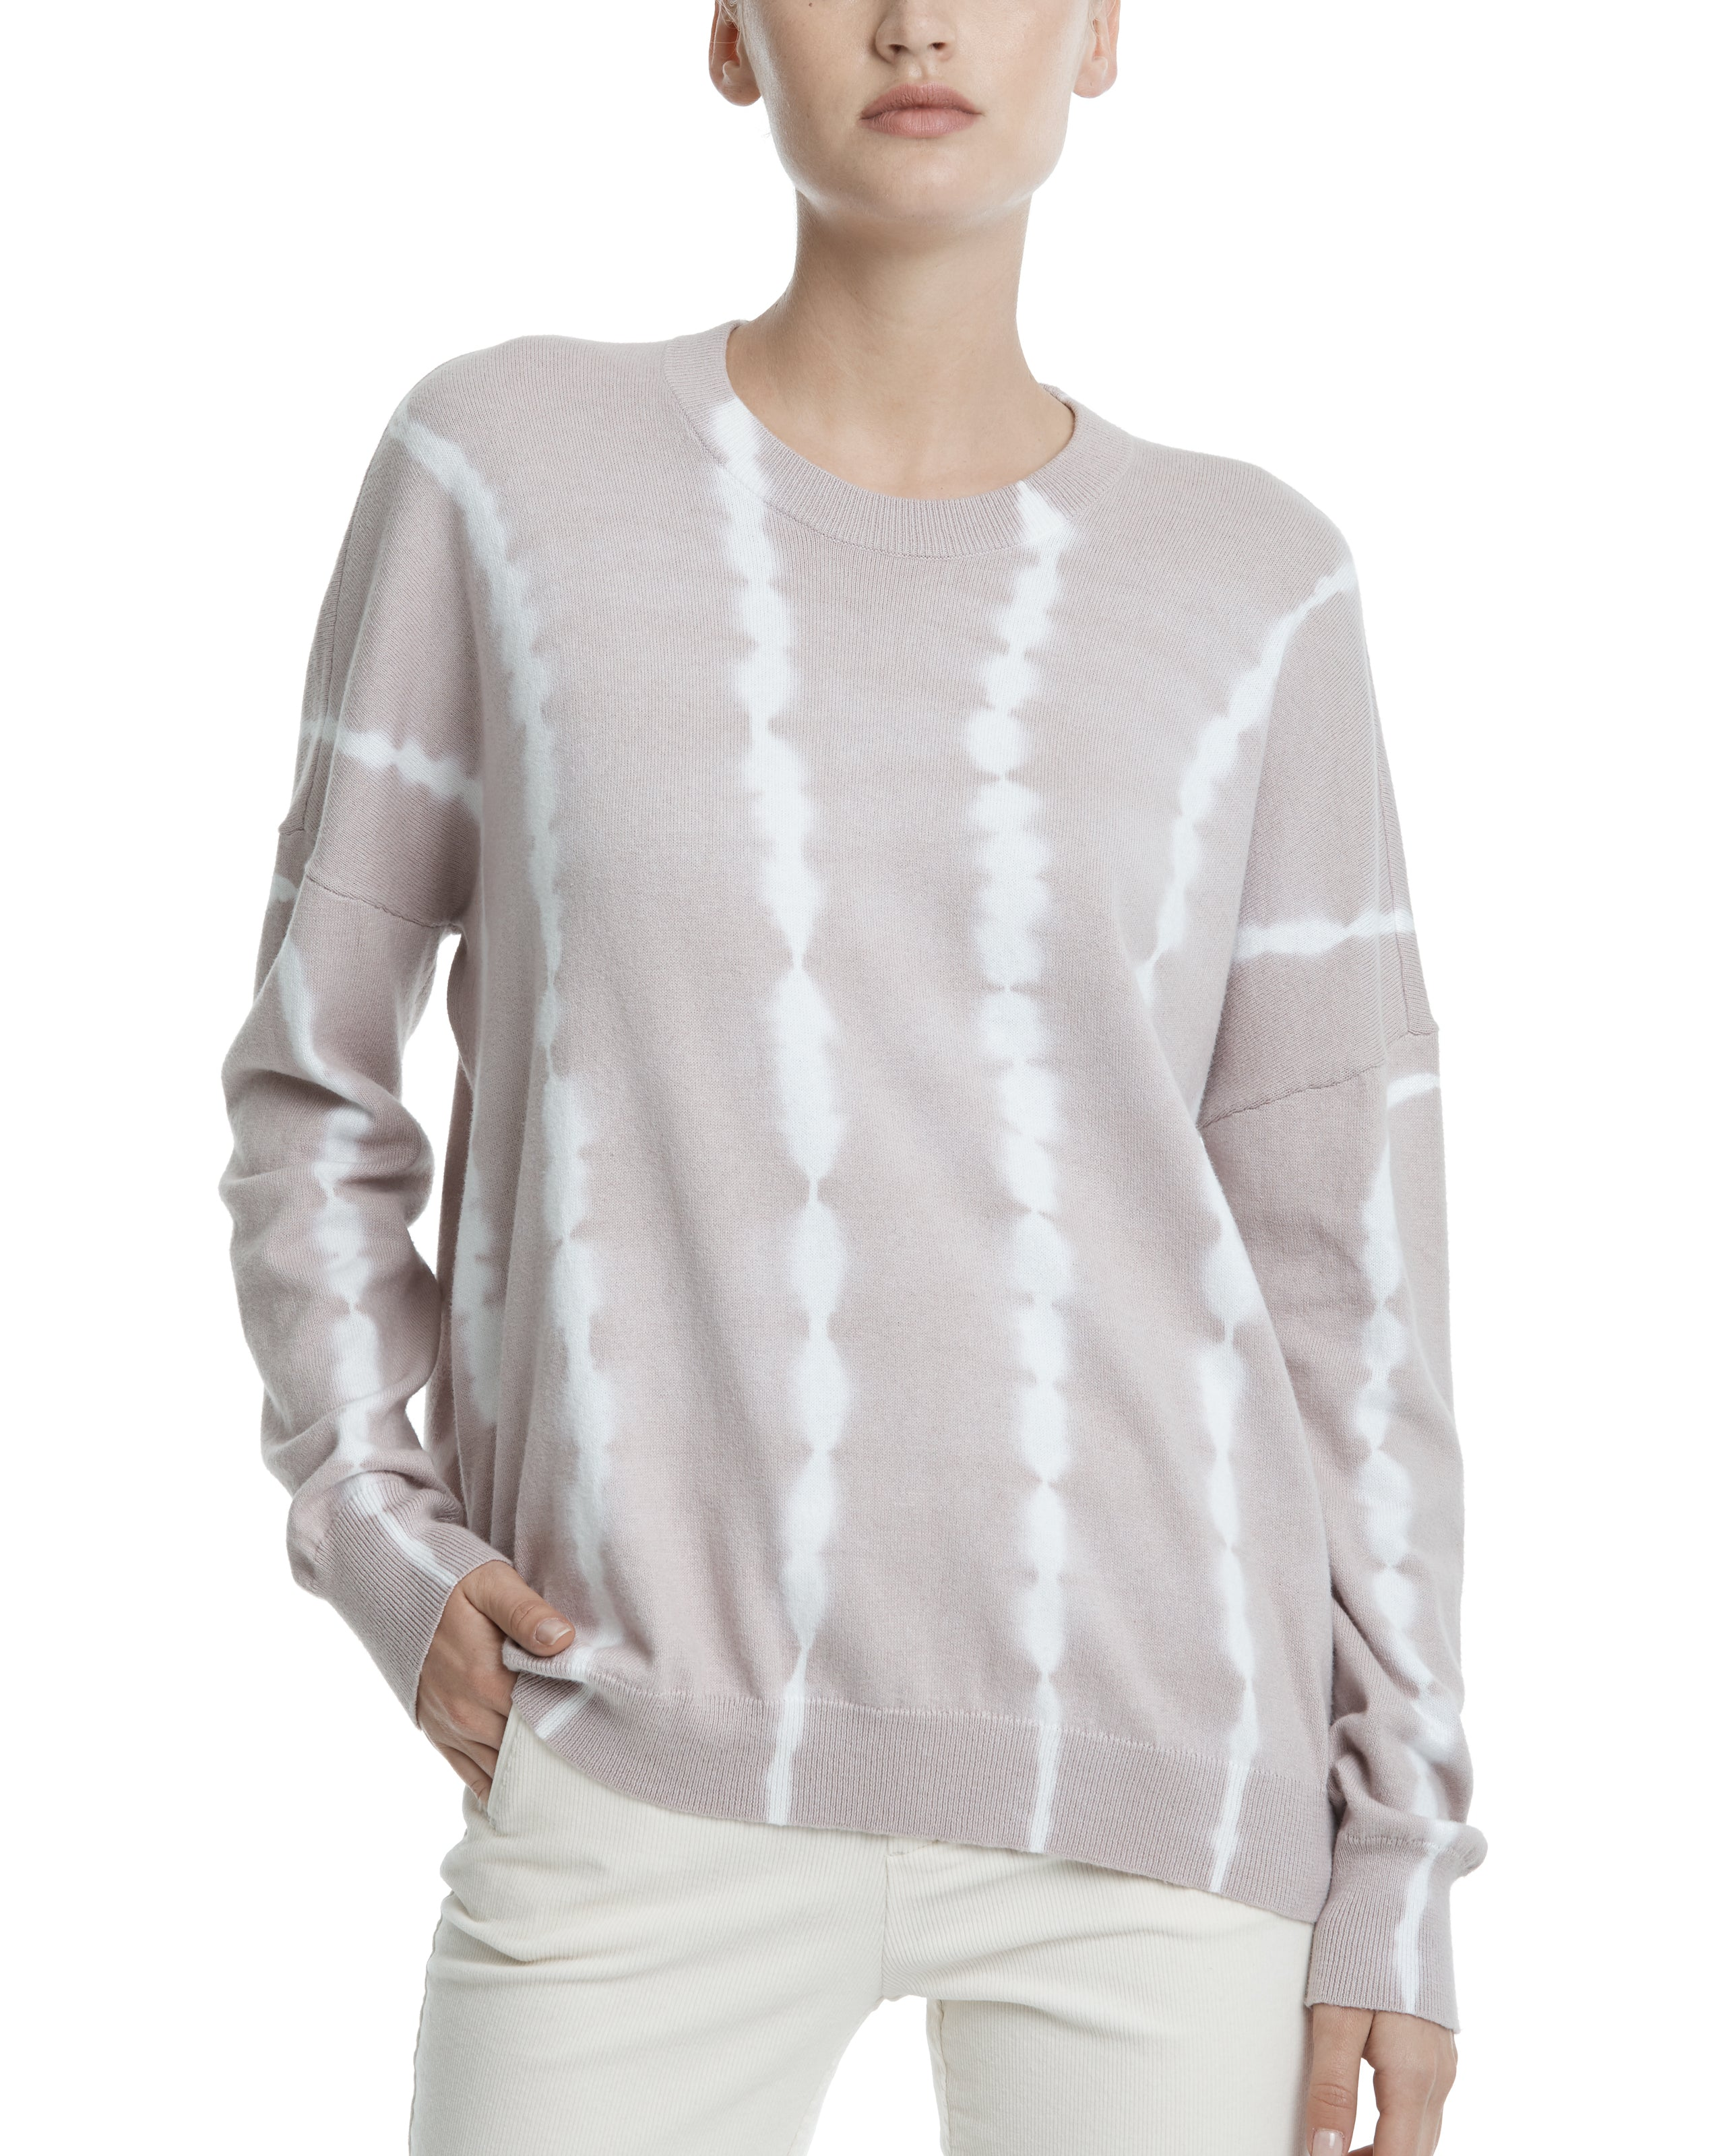 ATM Cotton Cashmere Tie Dye Sweater